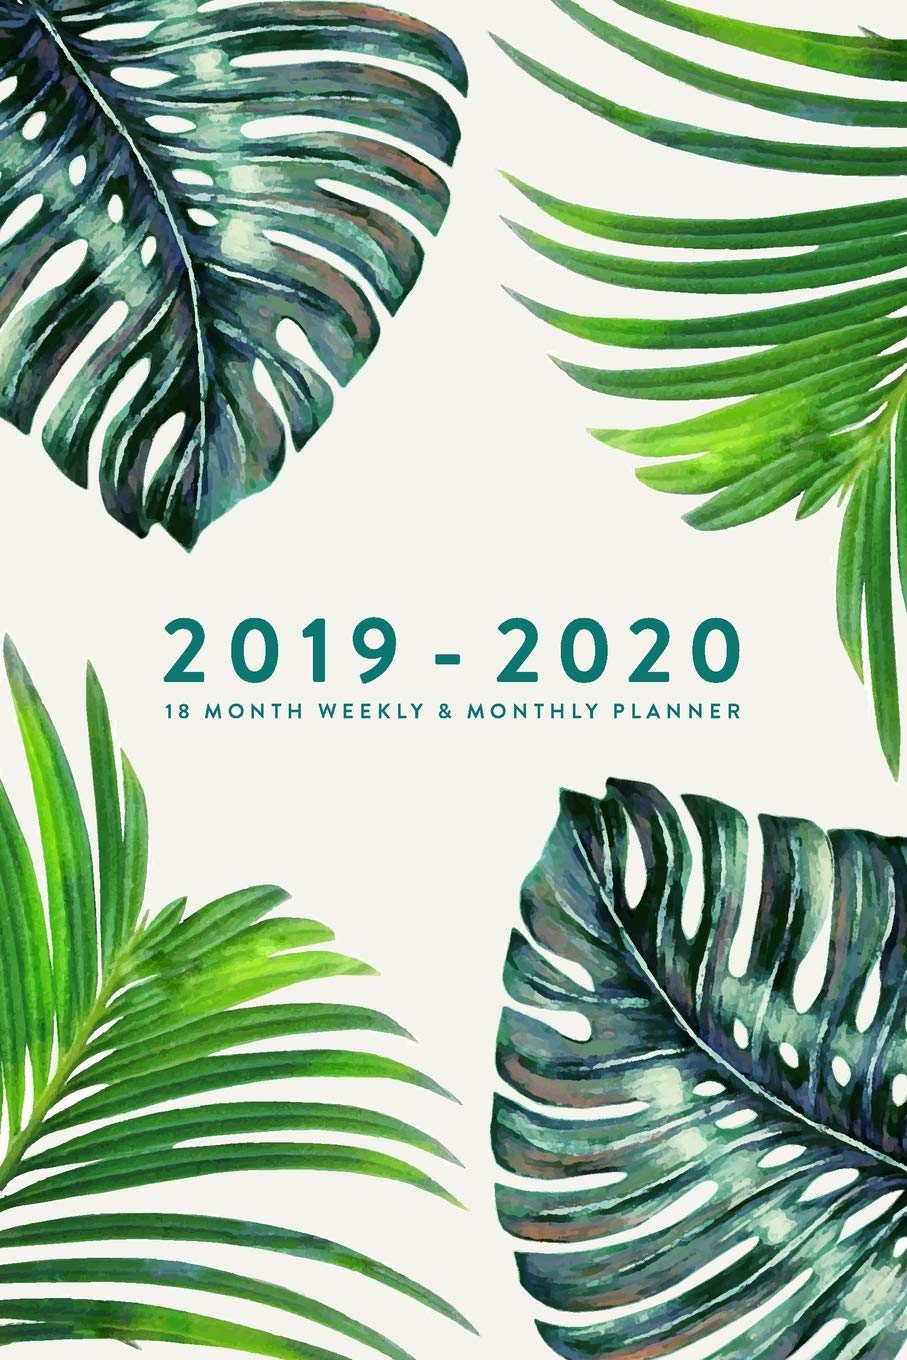 2019 - 2020, 18 Month Weekly & Monthly Planner: Fern, January 2019 ...